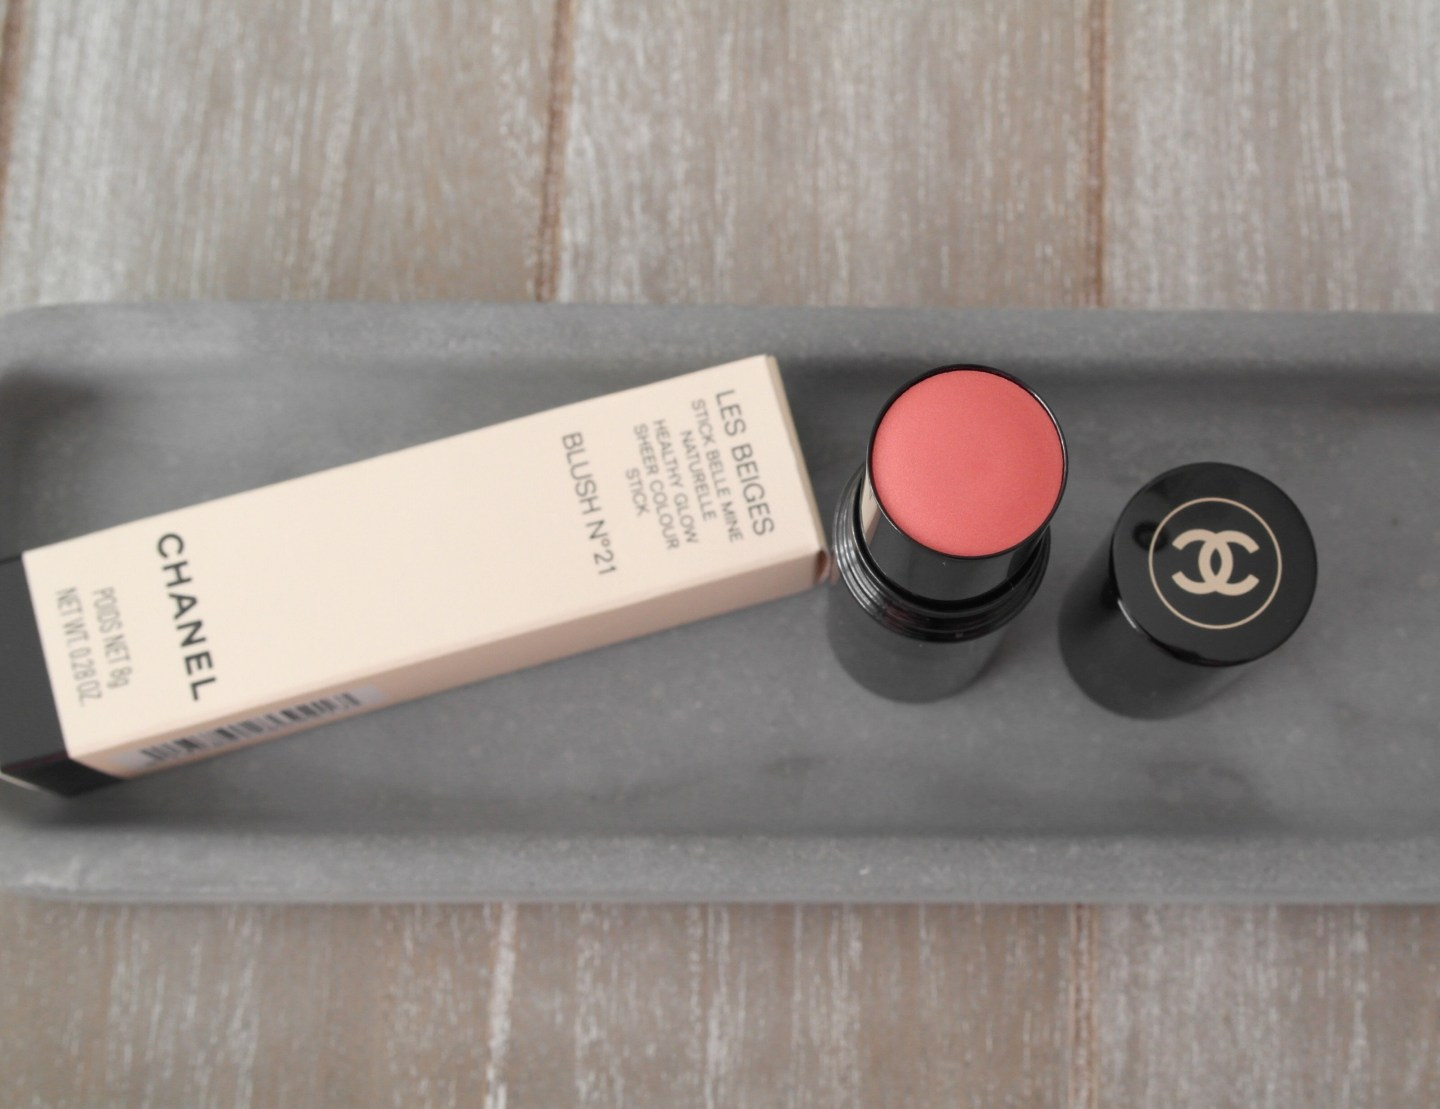 Chanel Les Beiges Healthy Glow Sheer Colour Stick No. 21